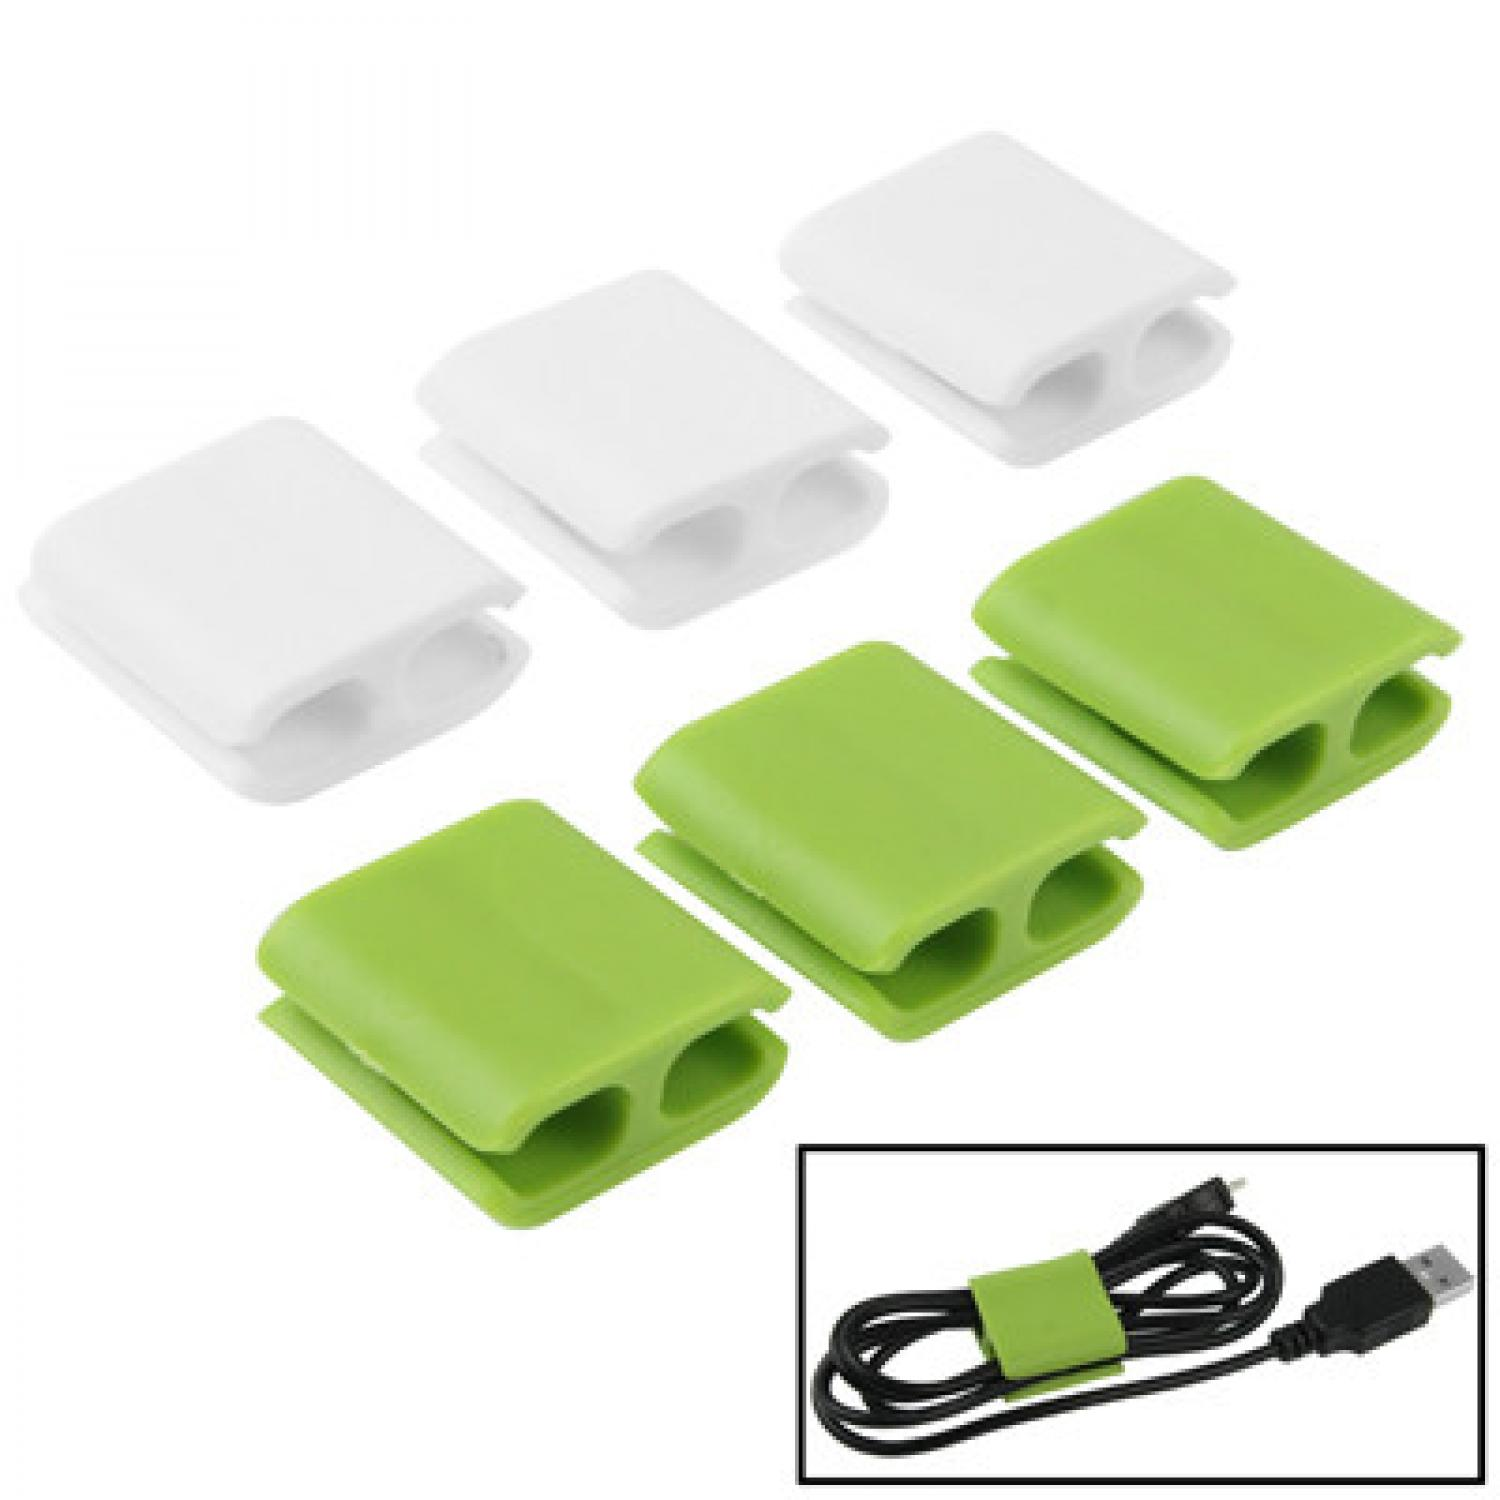 Smart Wire Cable Clips 6pcs - Size S